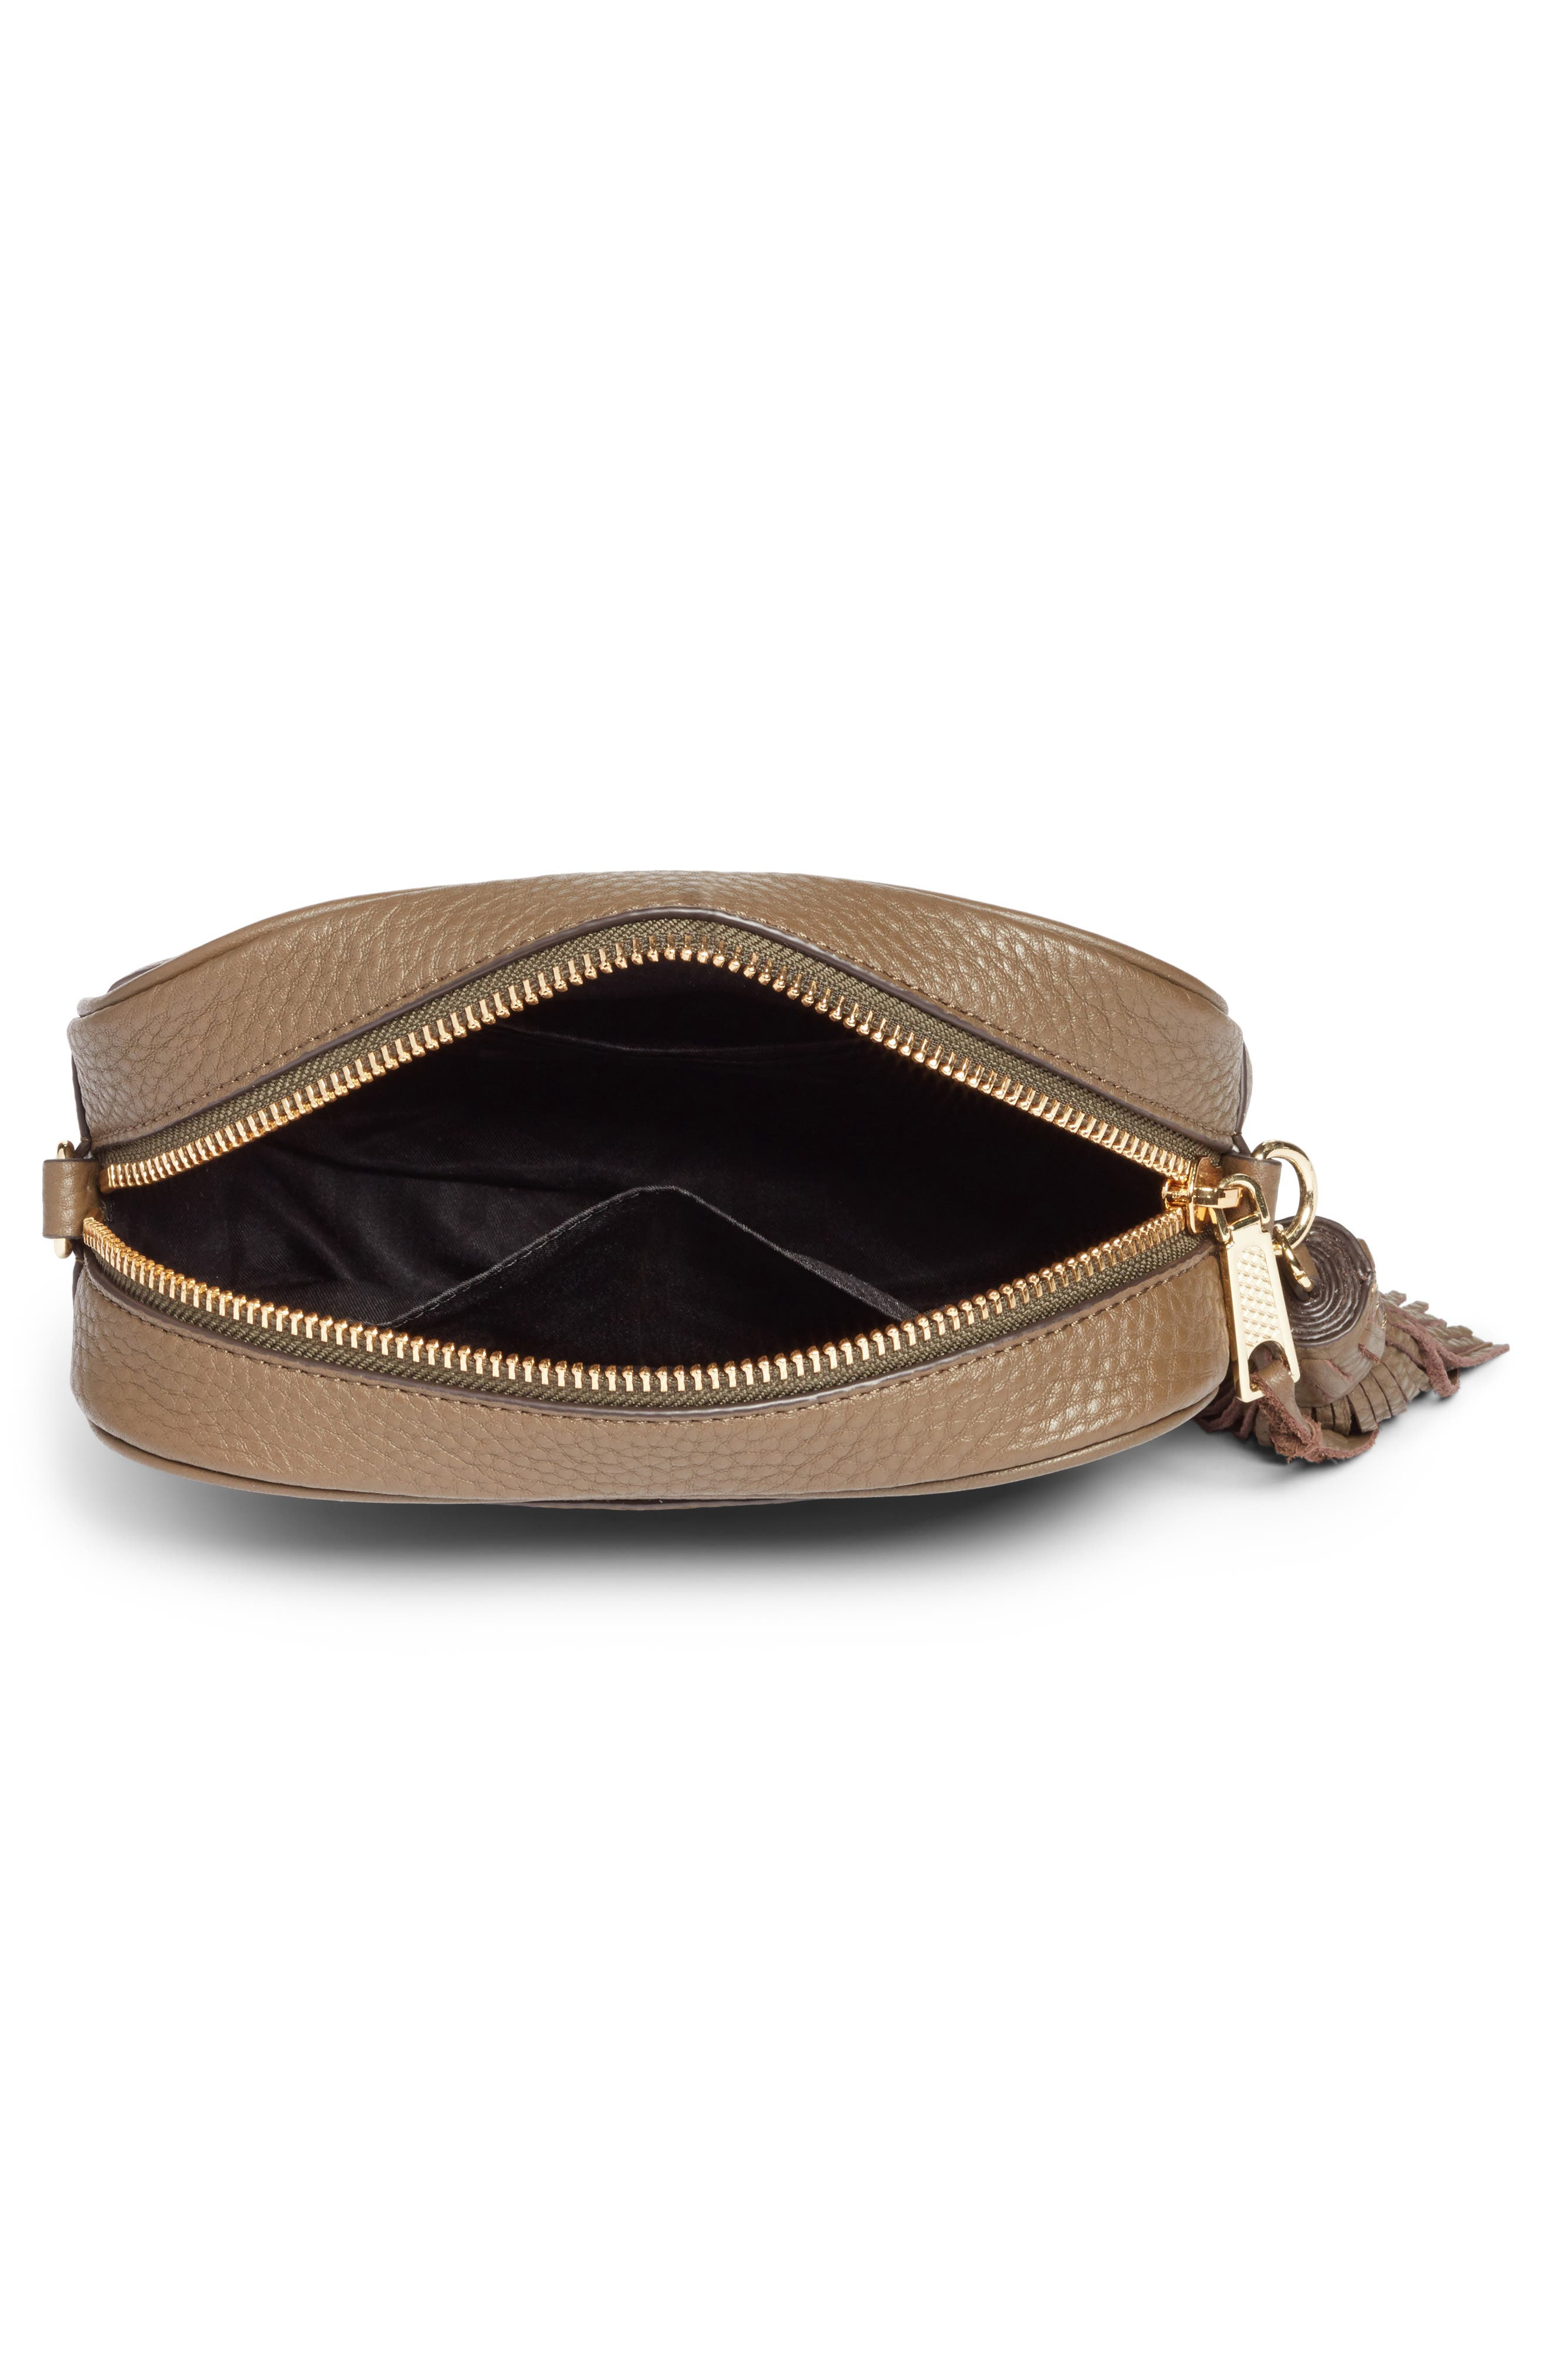 Leather Camera Bag with Guitar Strap,                             Alternate thumbnail 12, color,